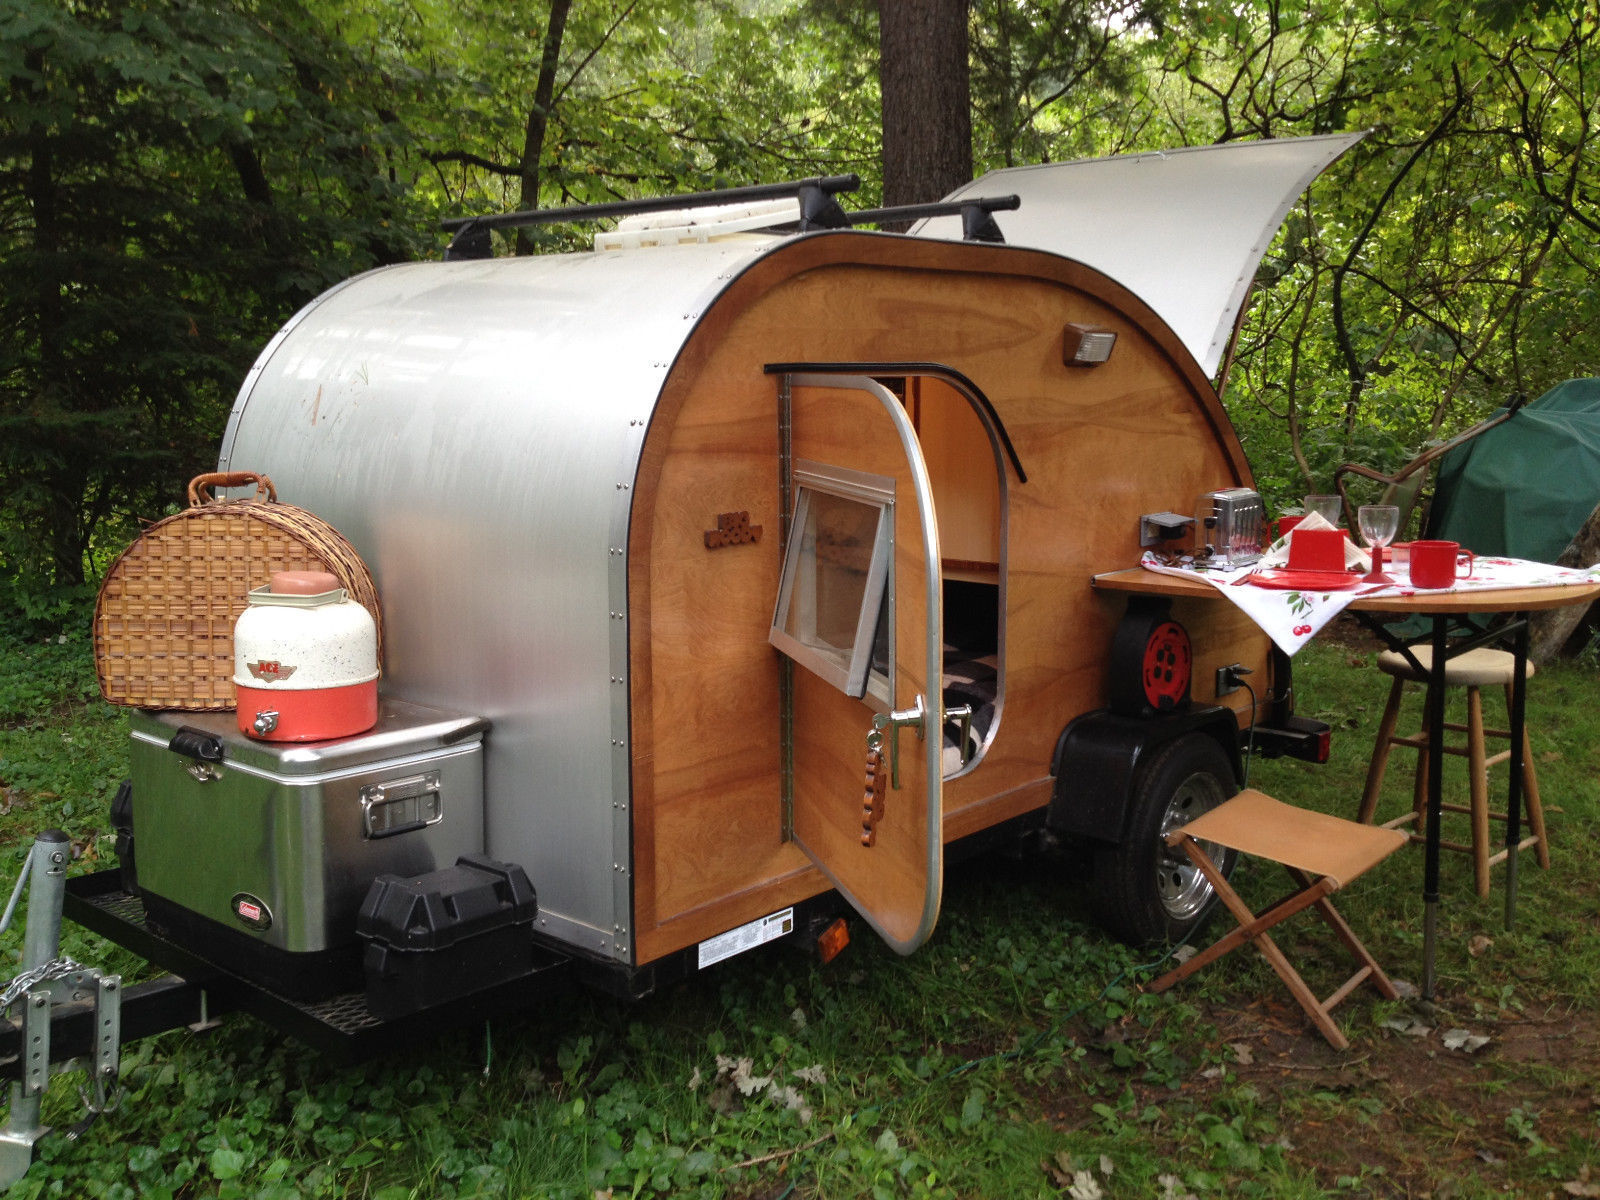 Model Compact Camper Sleepers  Teardrop Trailer